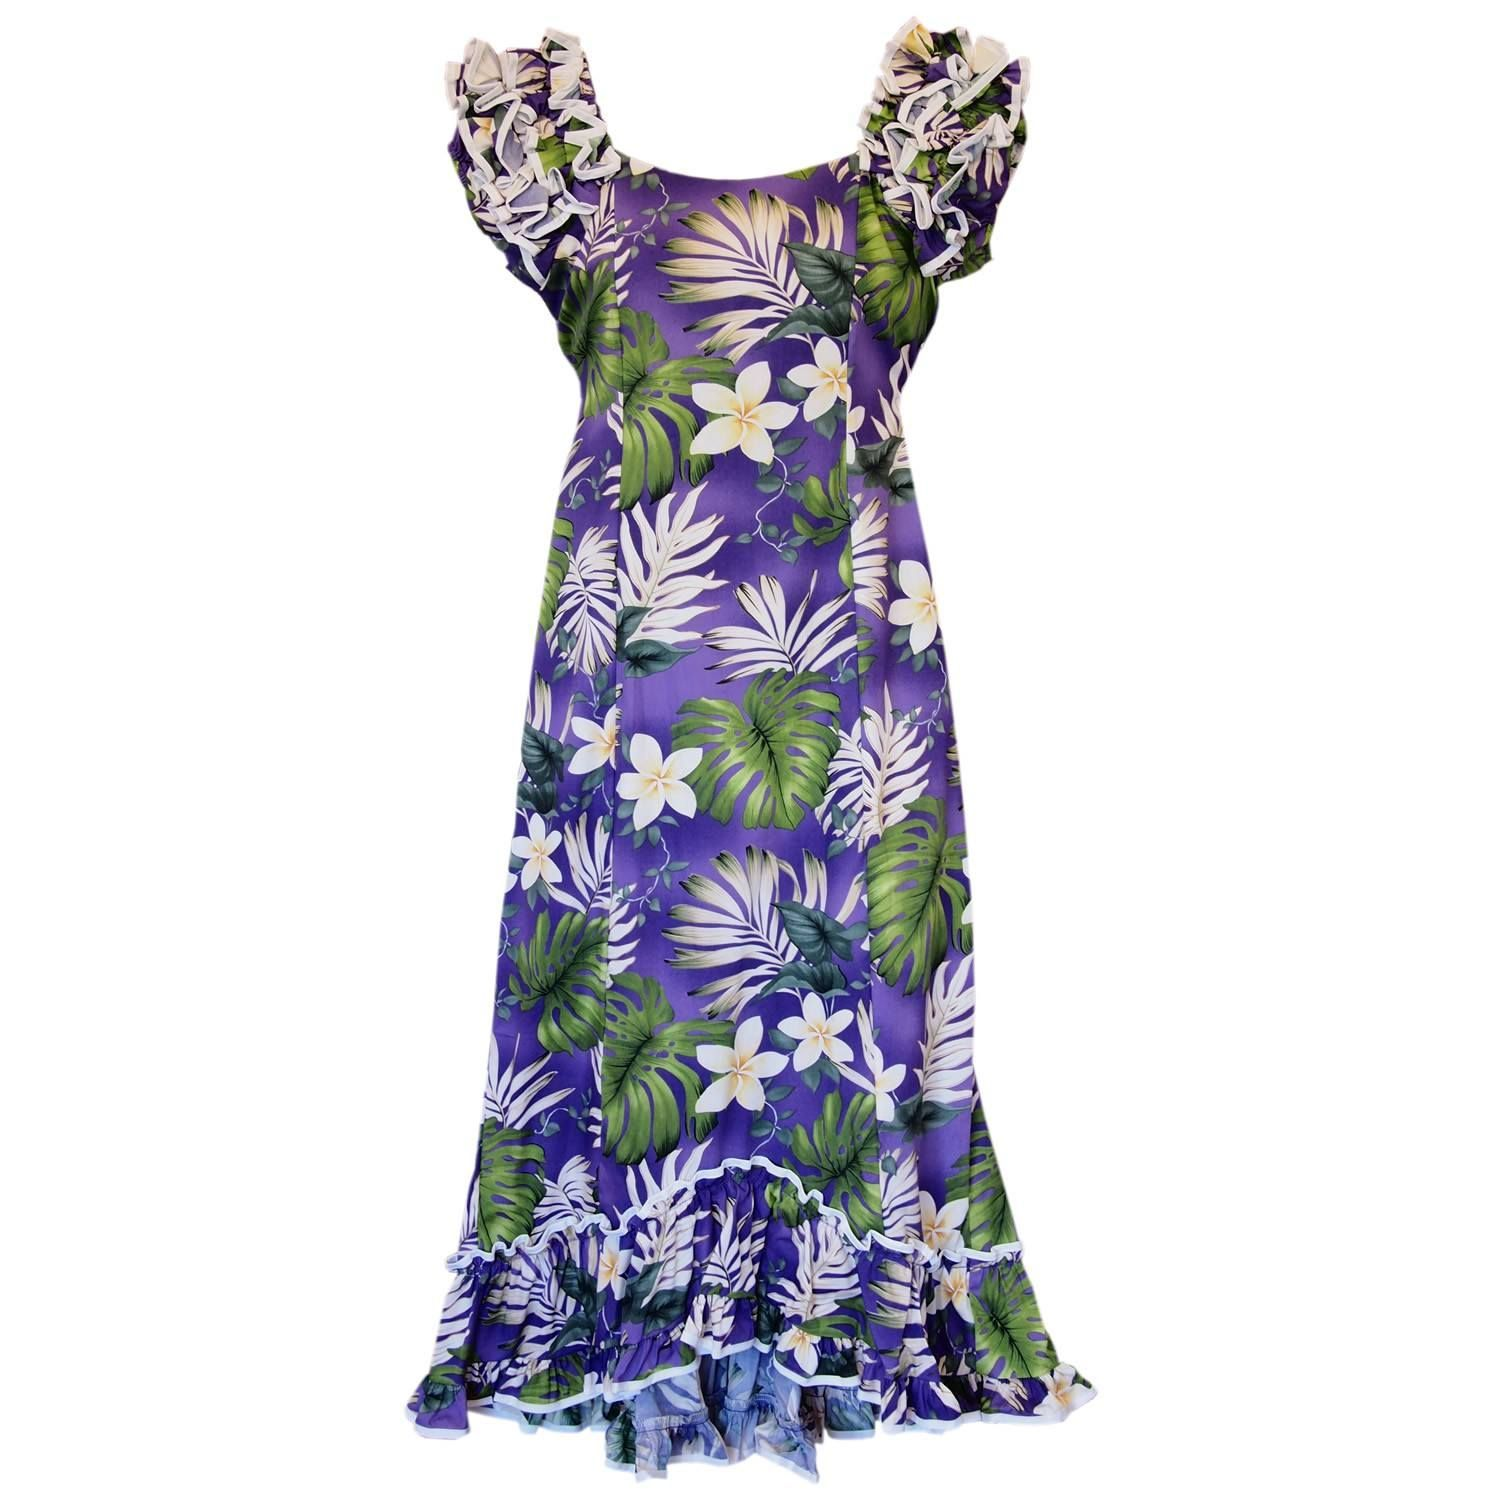 b2592844408 Amazon Purple Hawaiian Meaaloha Muumuu Dress with Sleeves